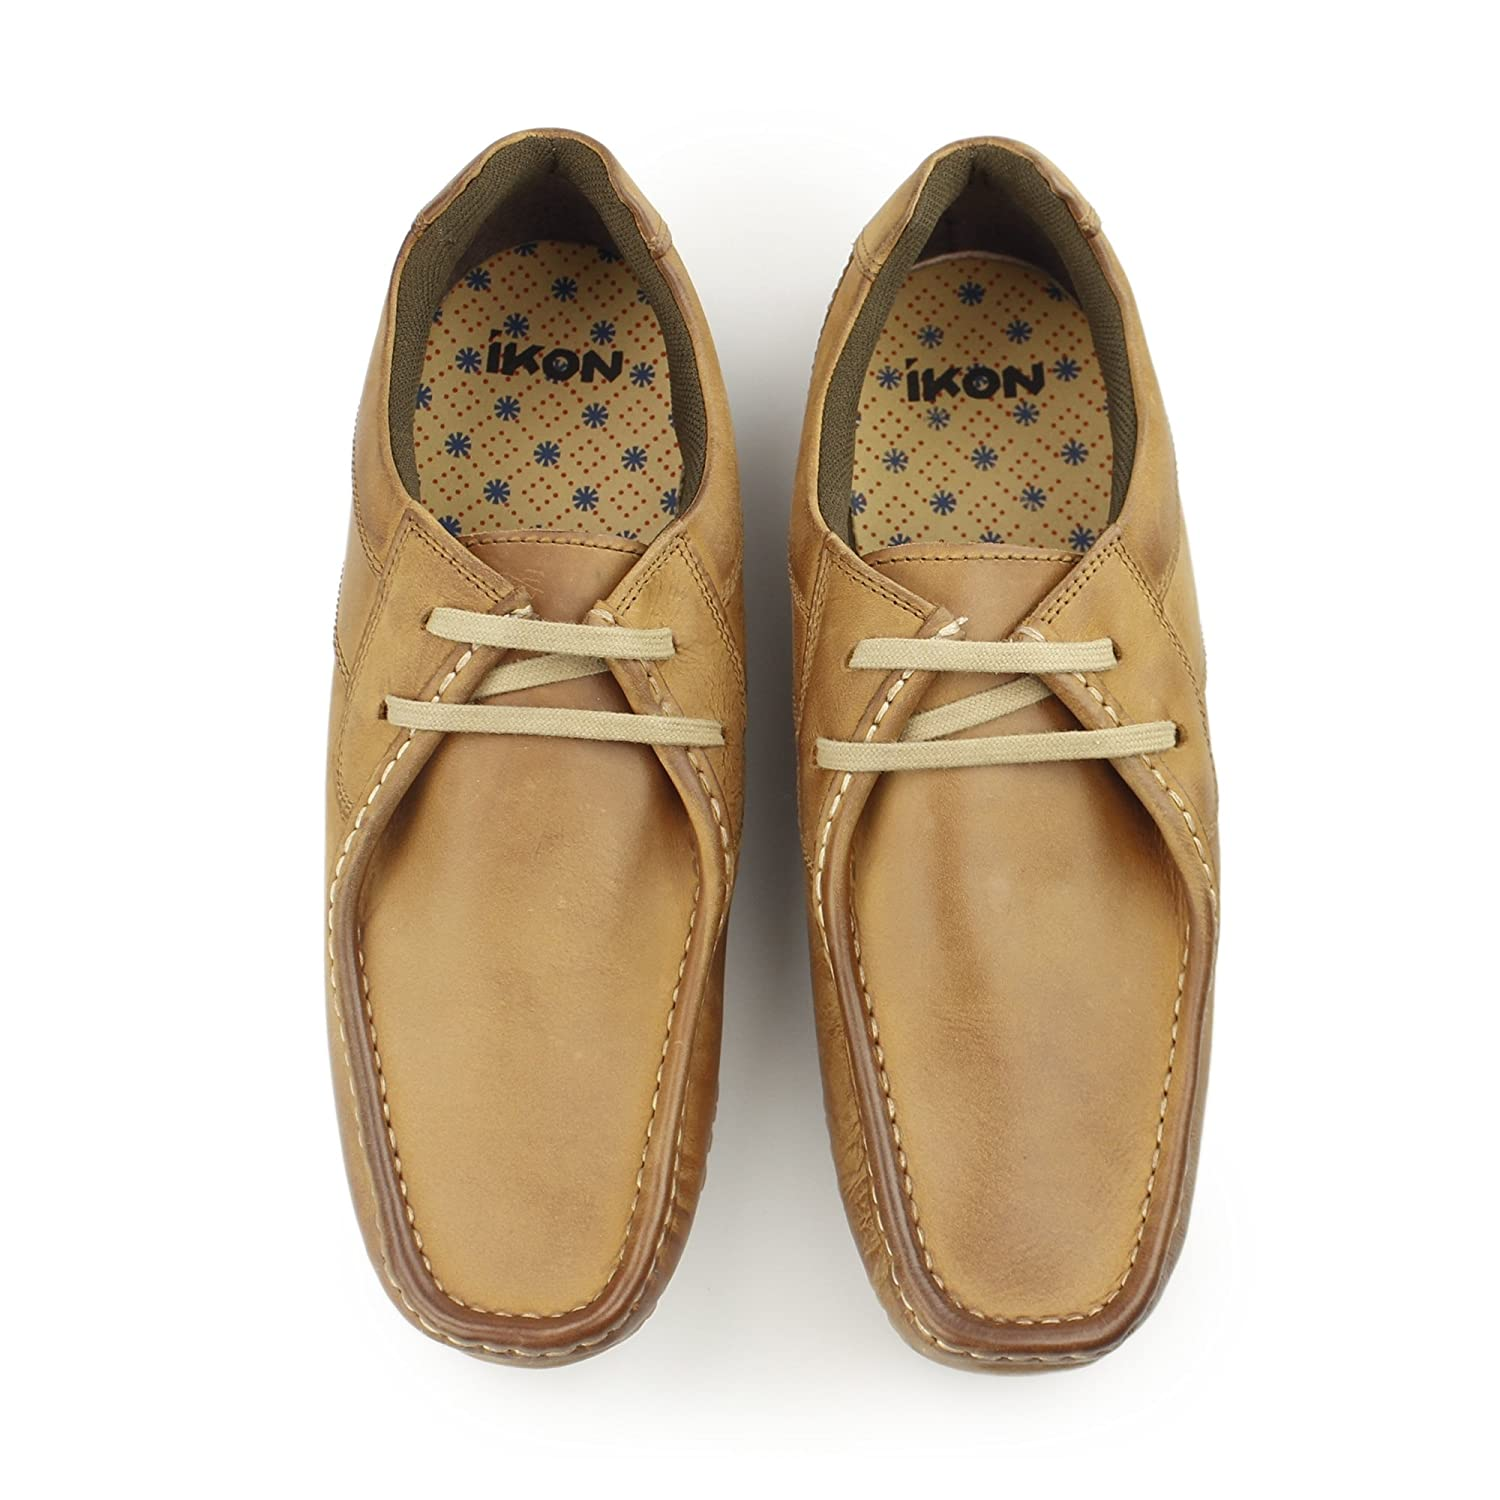 Ikon TIDE Mens Leather Lace Up Moccasin Shoes Tan: Amazon.co.uk: Shoes &  Bags